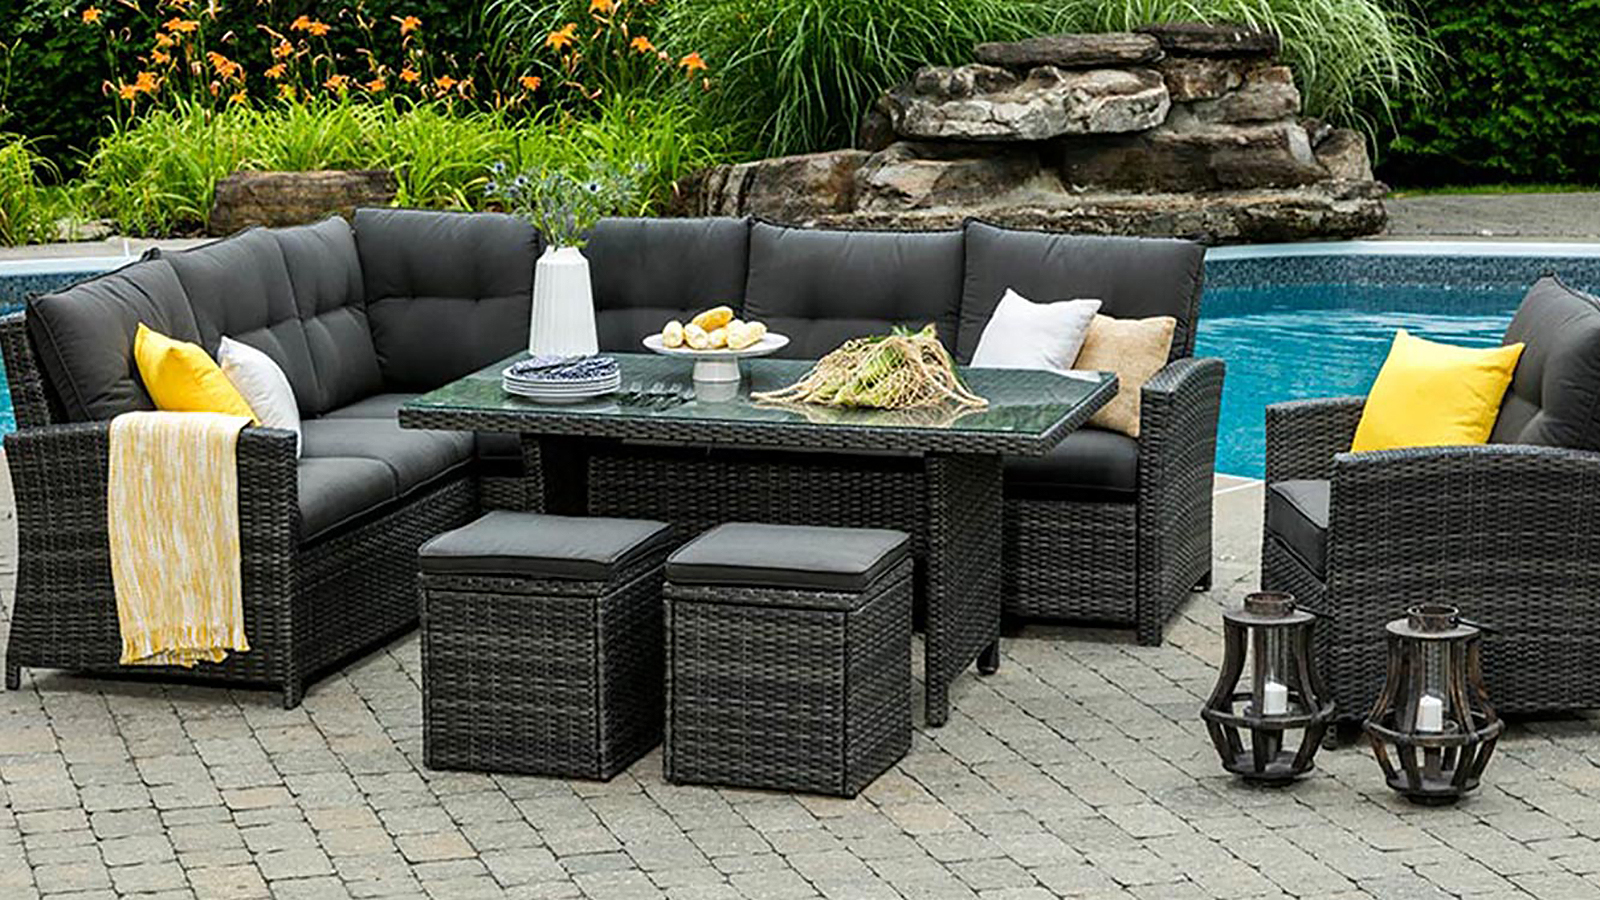 Patio Furniture Winnipeg Valencia Outdoor Dining Collection Crown Spas Pools Winnipeg